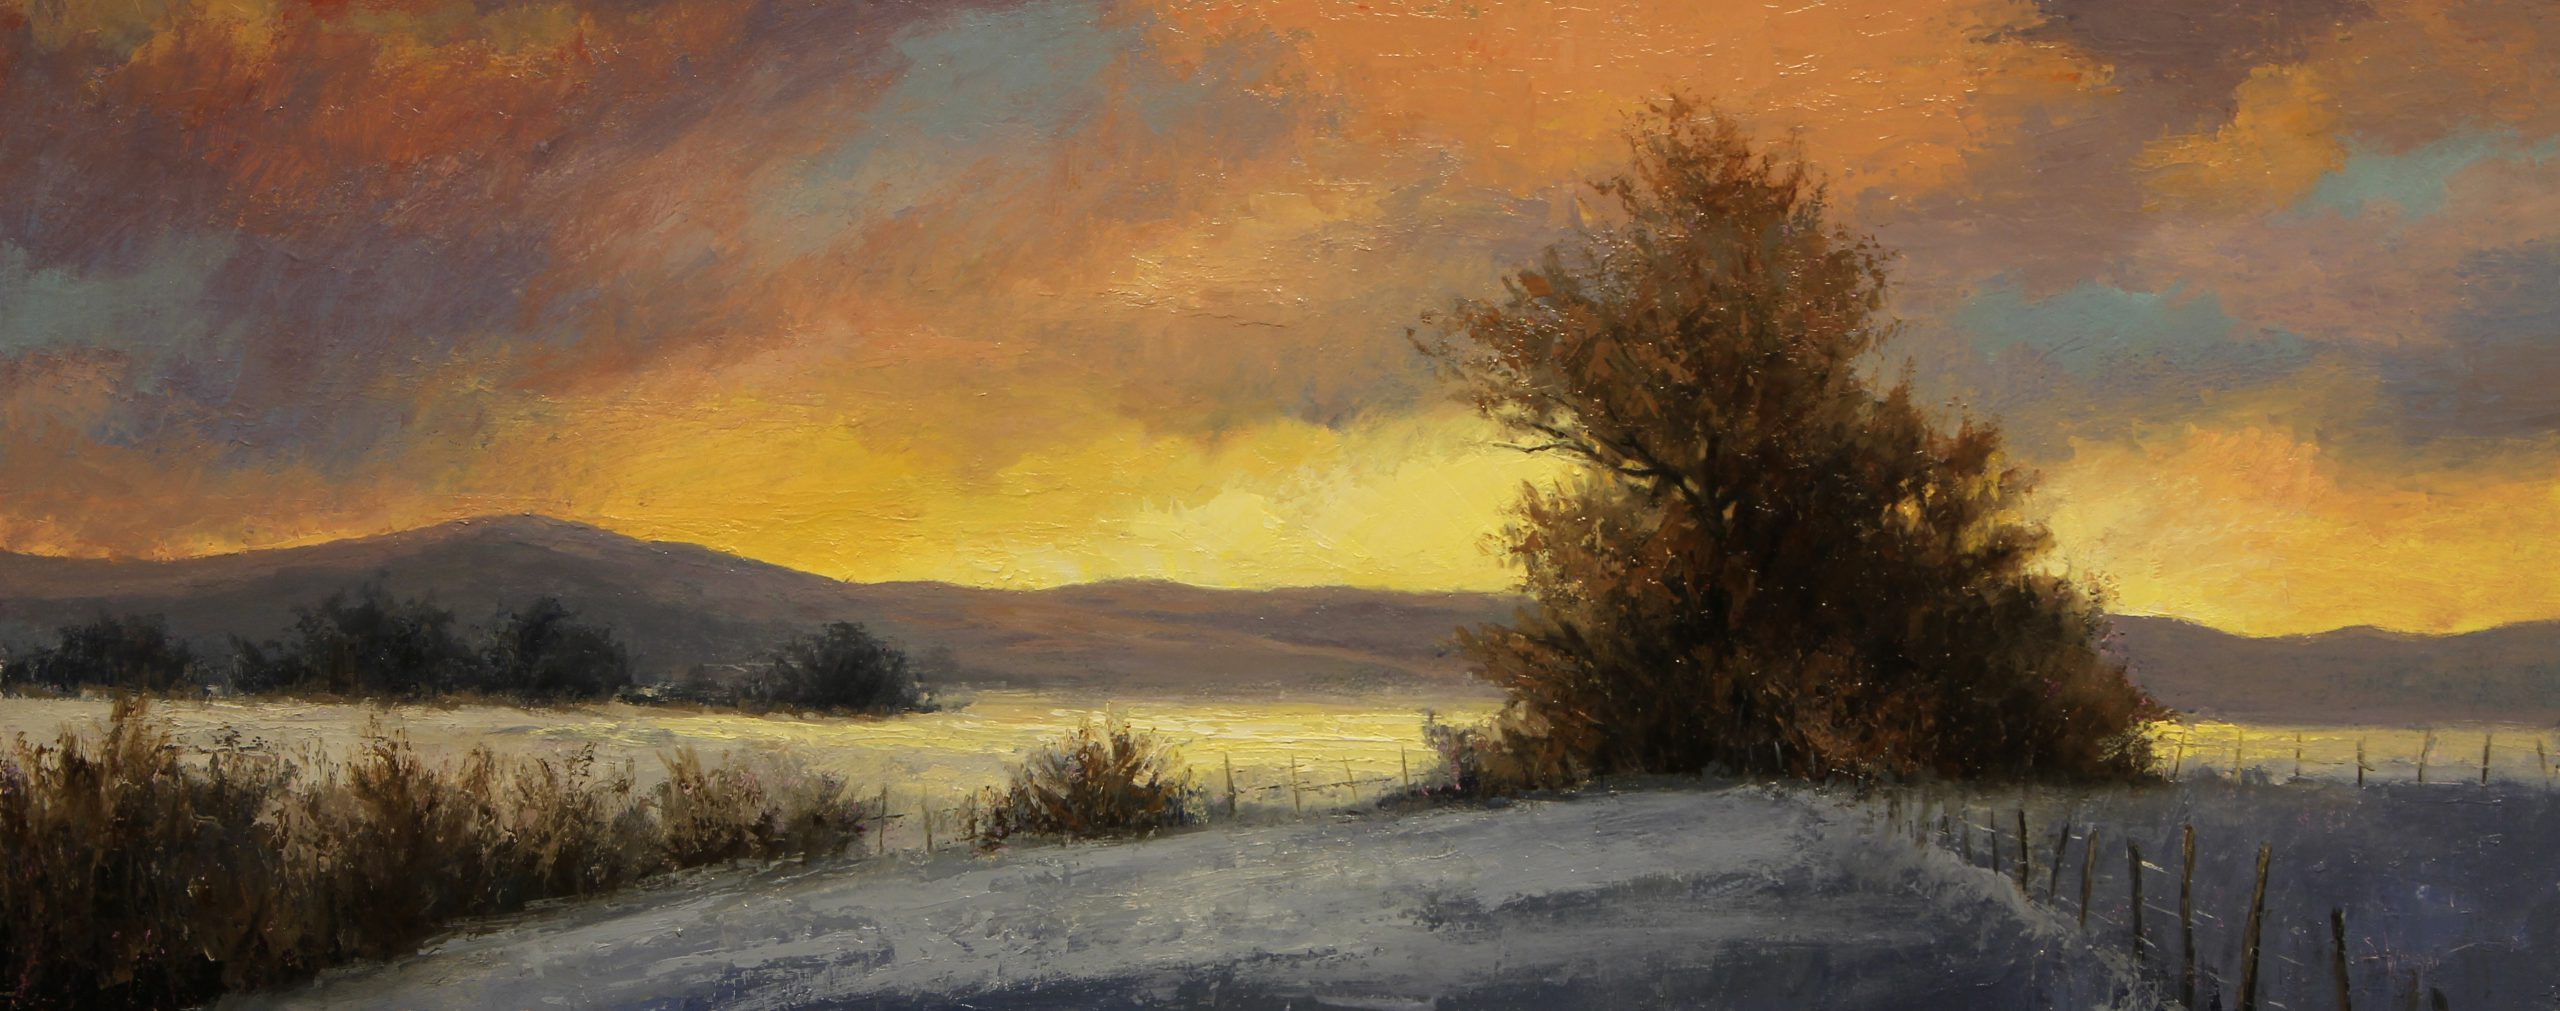 Simon Winegar - Winter in Color